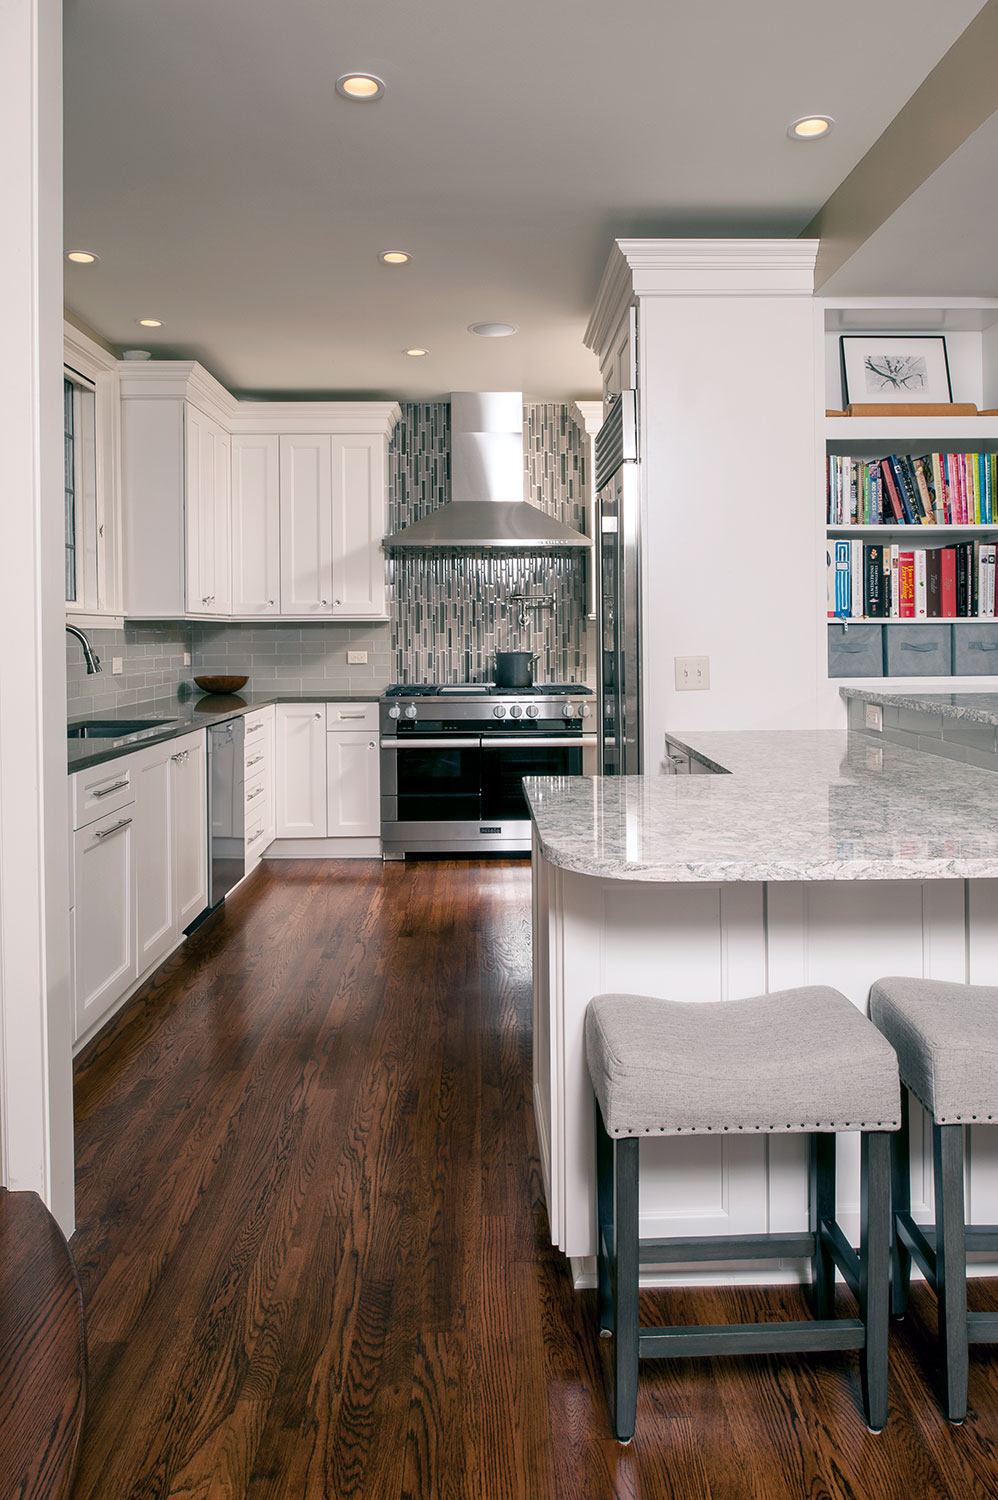 Other Projects. Sleek Professional Kitchen With A Modern Flare